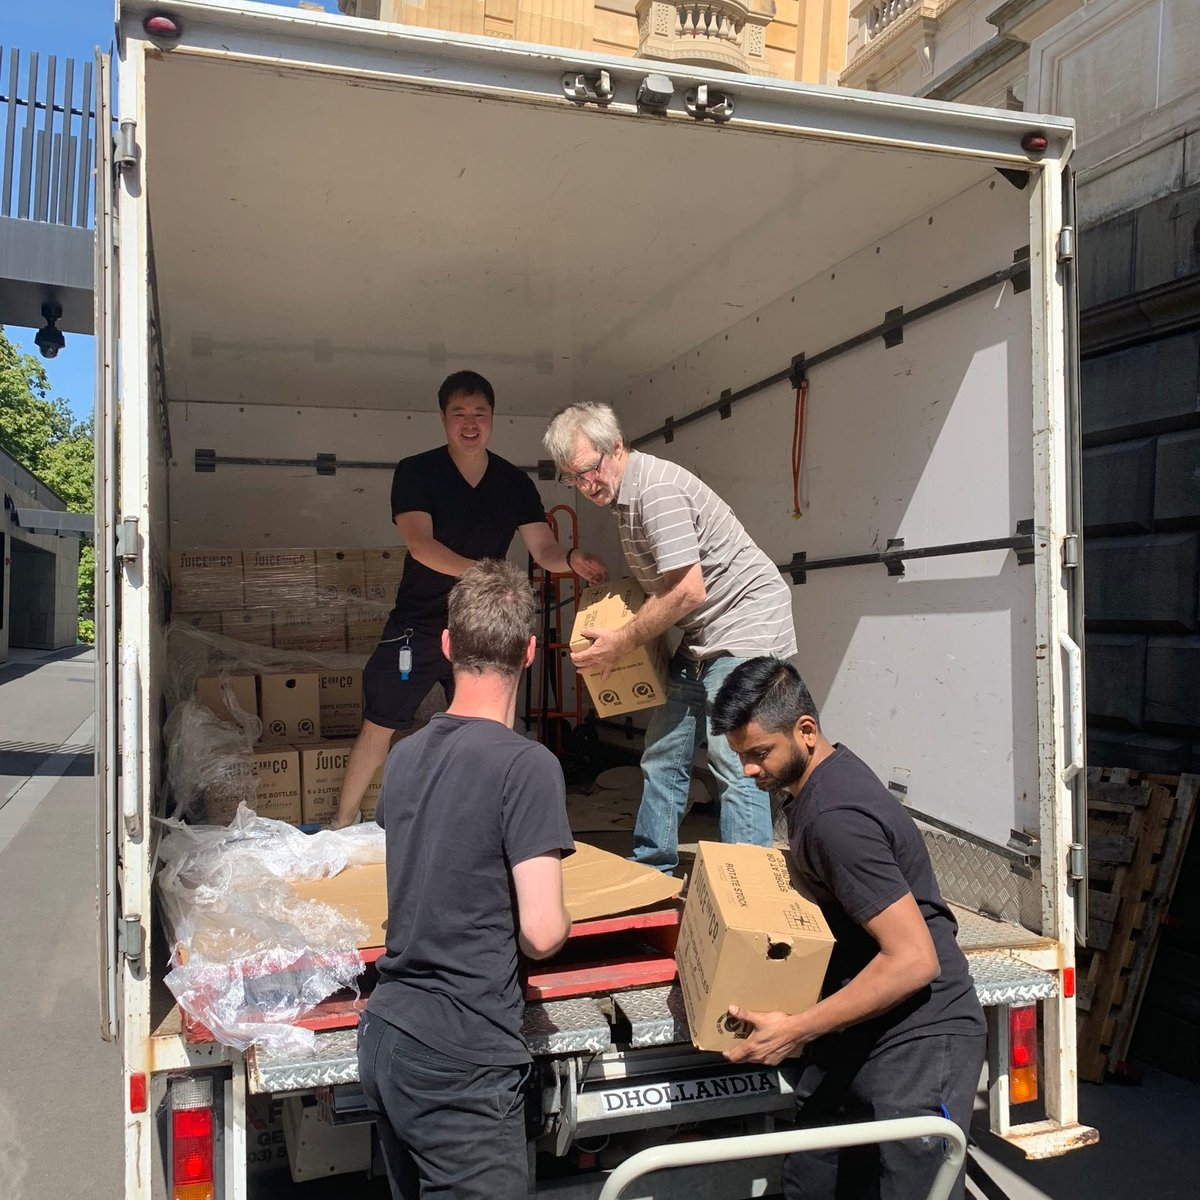 What a great donation today - 9 tonnes of food items from @CrownResorts to help Parliament House kitchens prepare meals for those in need, working in partnership with various charitable organisations #springst https://t.co/Jjc81stgu5